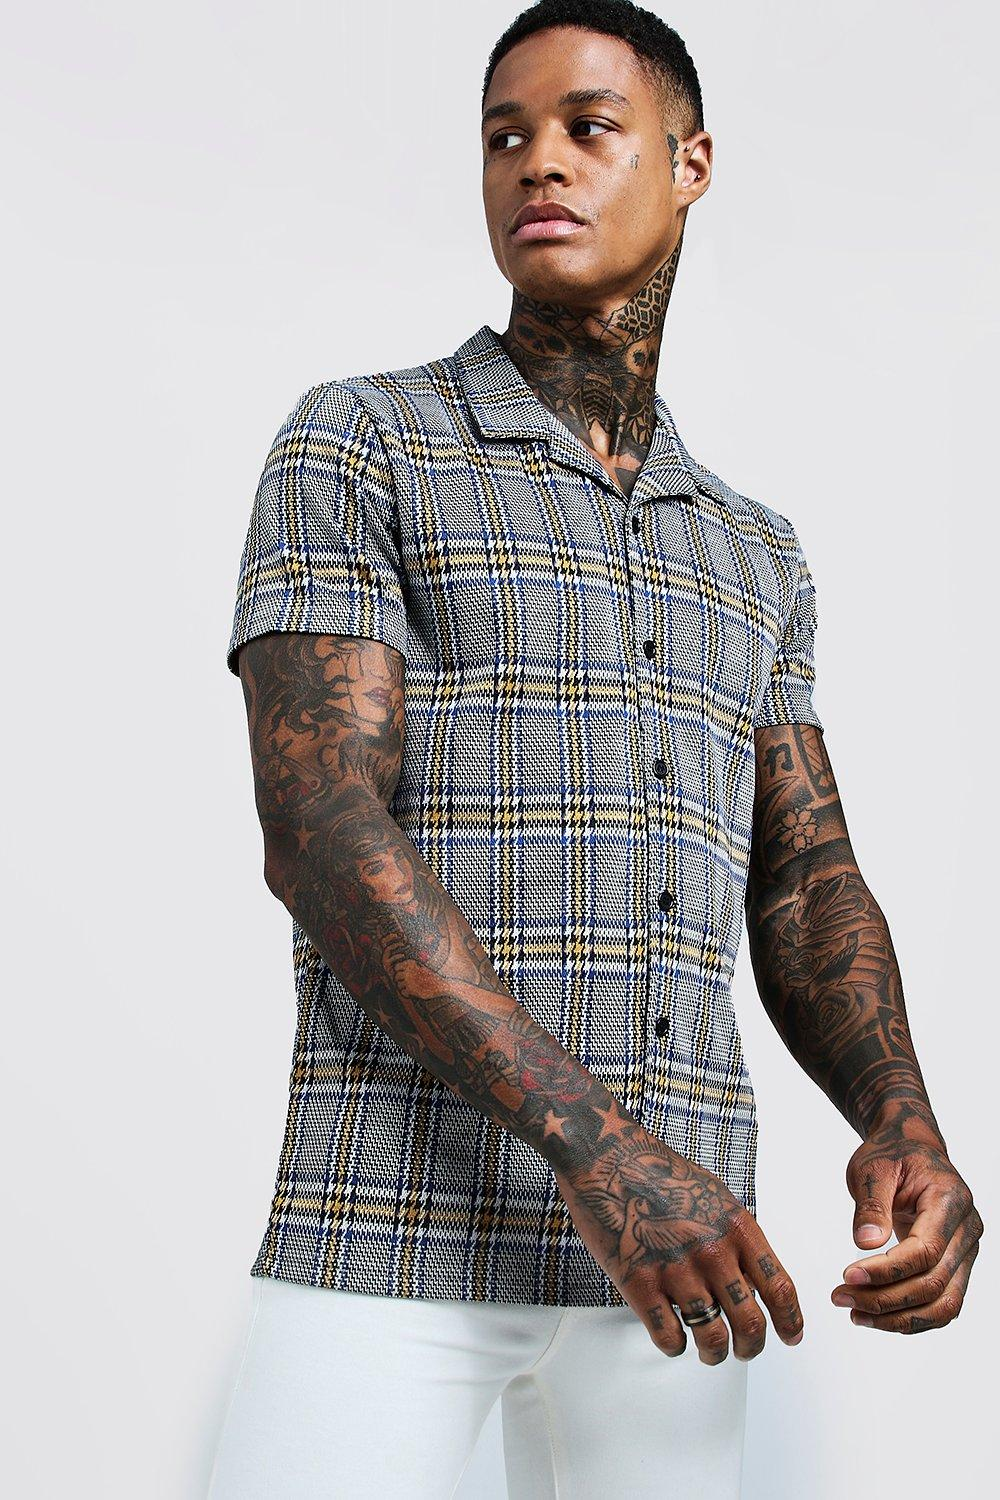 Retro Clothing for Men | Vintage Men's Fashion Jacquard Check Short Sleeve Revere Shirt $32.00 AT vintagedancer.com